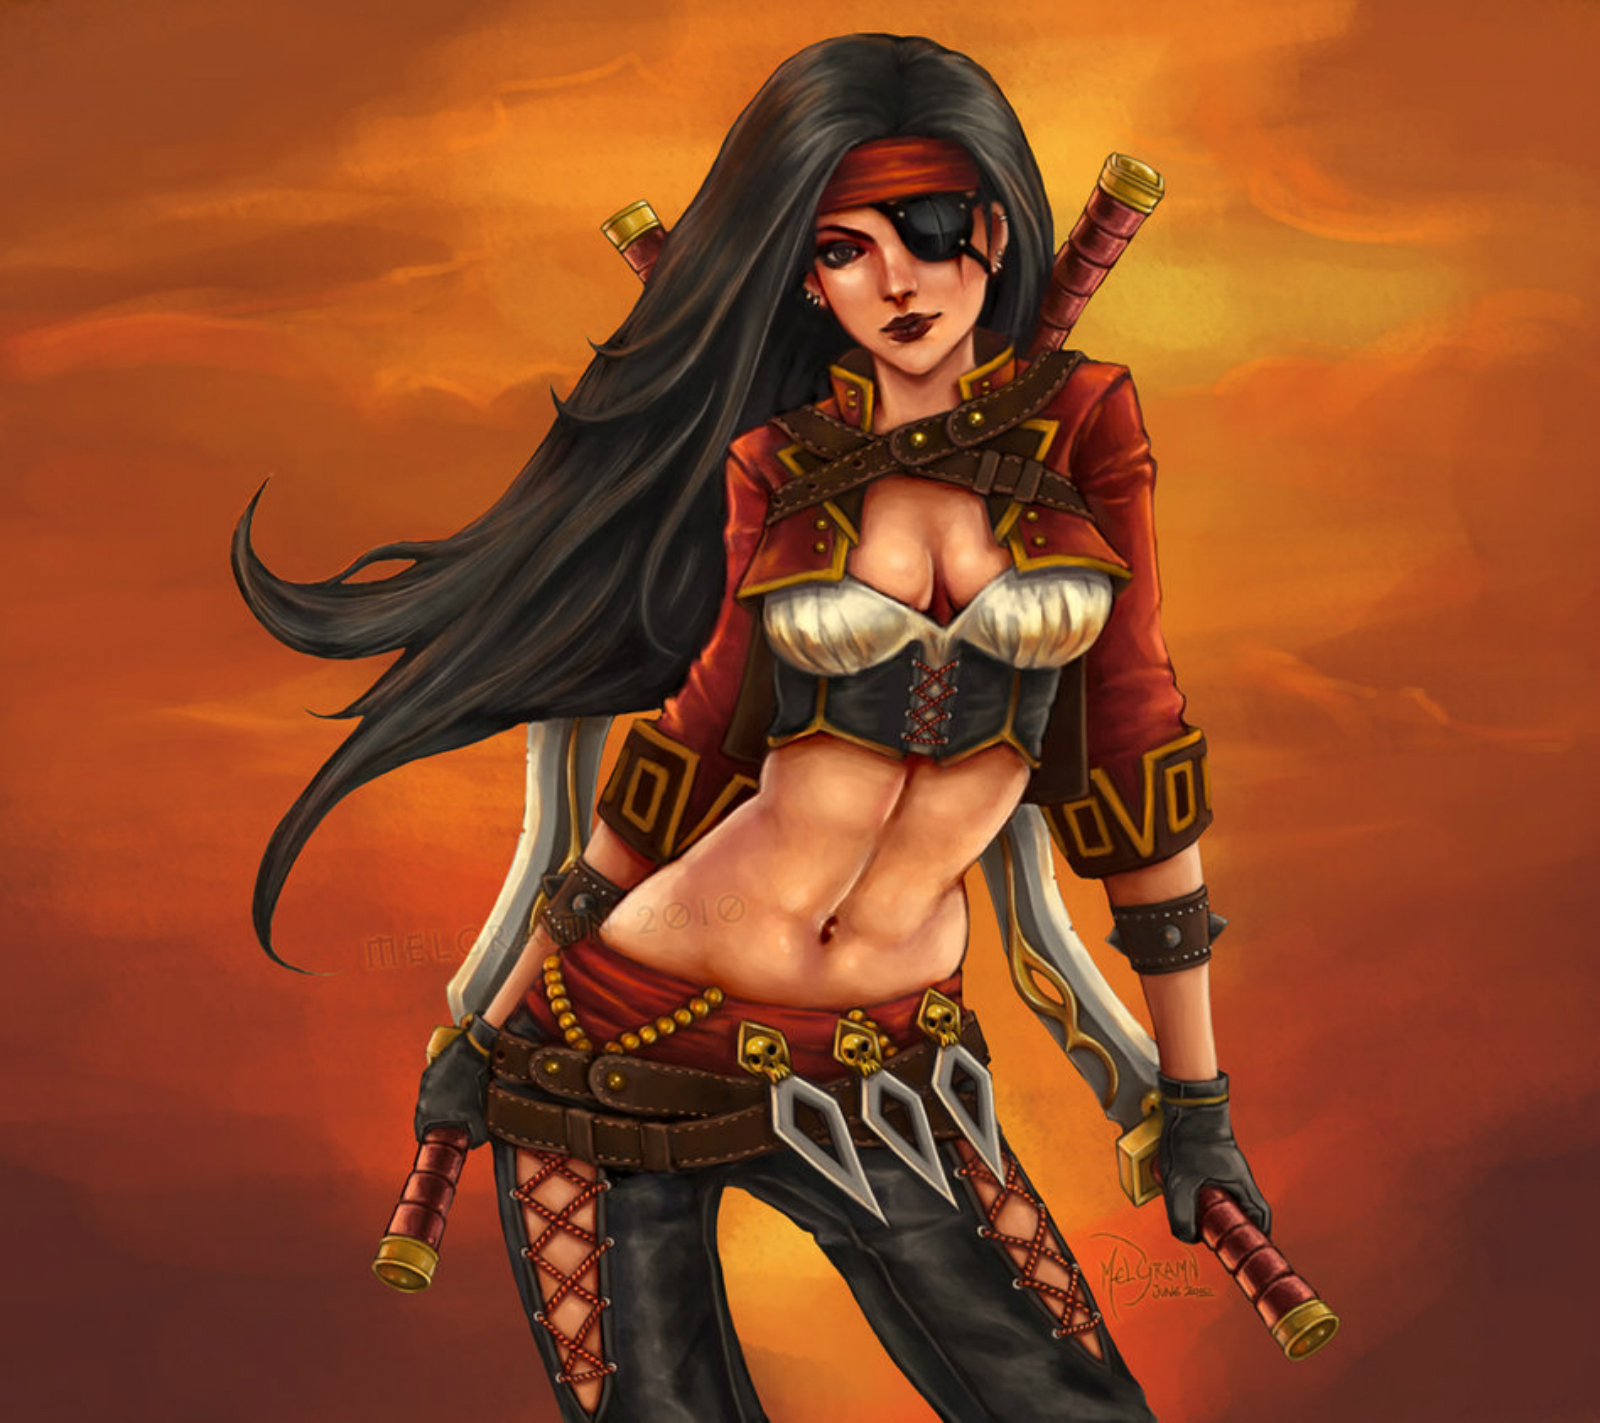 http://1.bp.blogspot.com/-hKrjNJM20qk/TknESnaSn4I/AAAAAAAAAlA/34G4l4SnLtY/s1600/vallpaper.net_league_of_legends_katarina_pirate.jpg